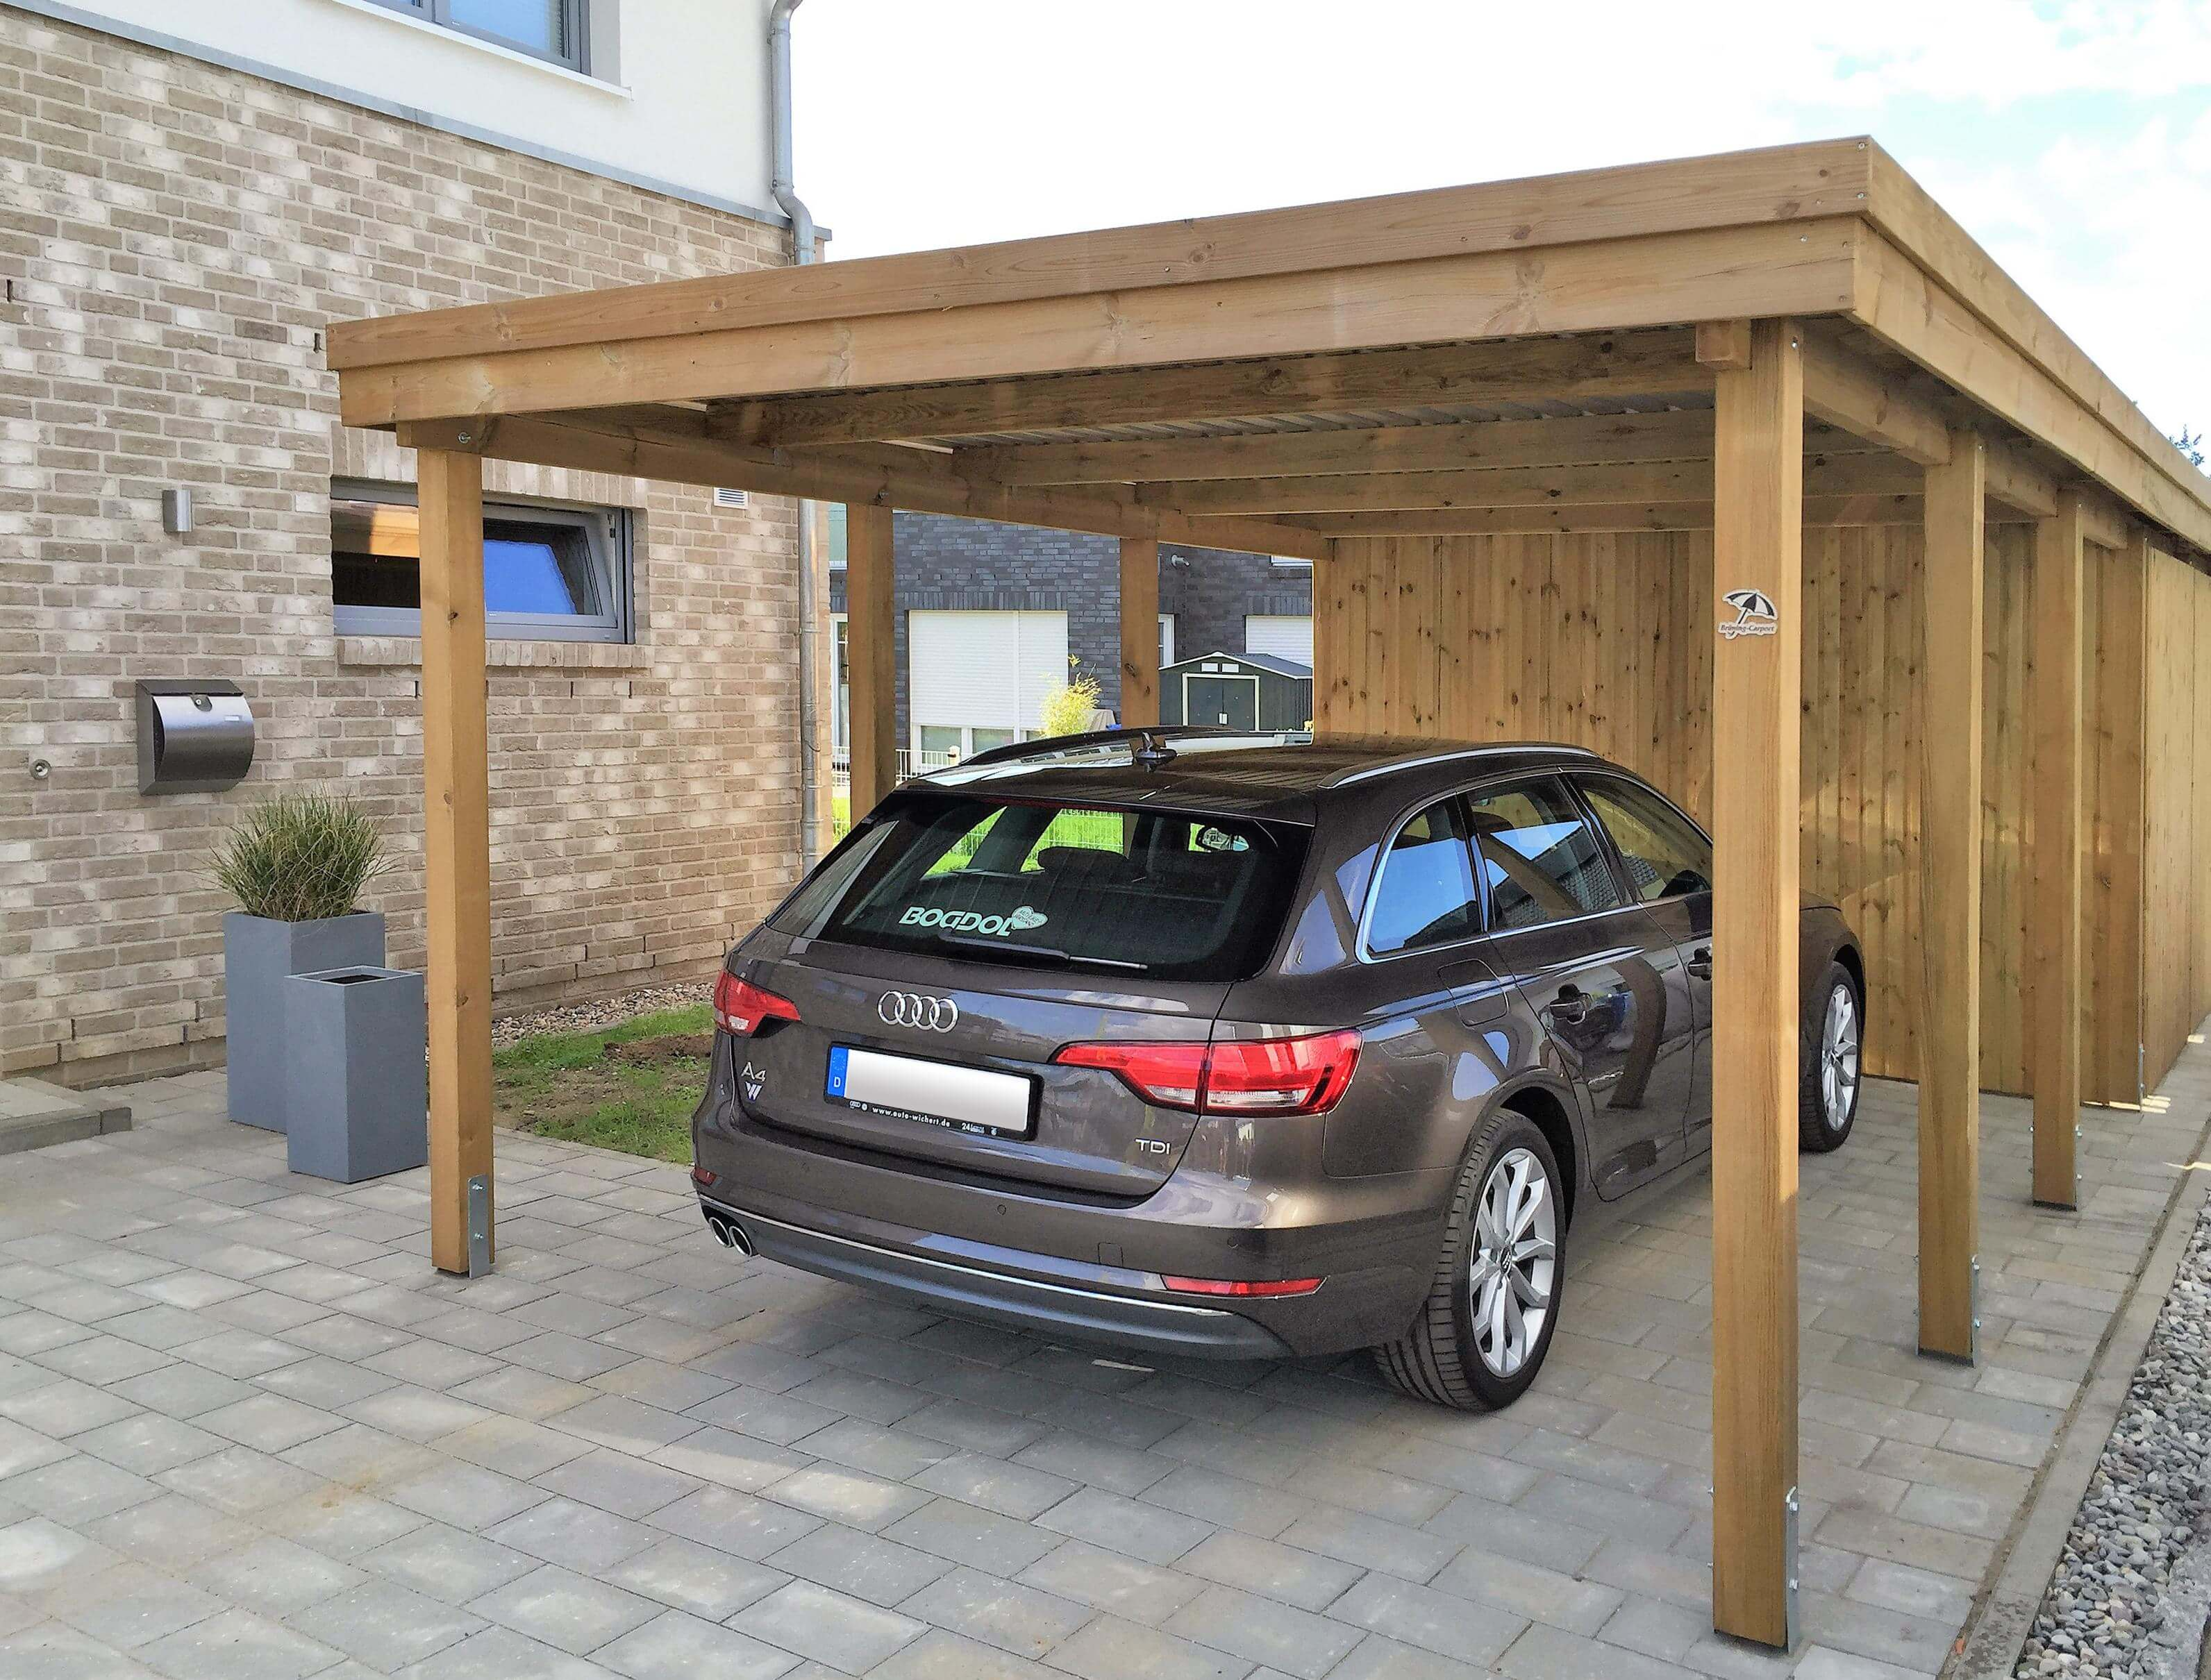 flachdach carport mit abstellraum news detail br ning carport. Black Bedroom Furniture Sets. Home Design Ideas